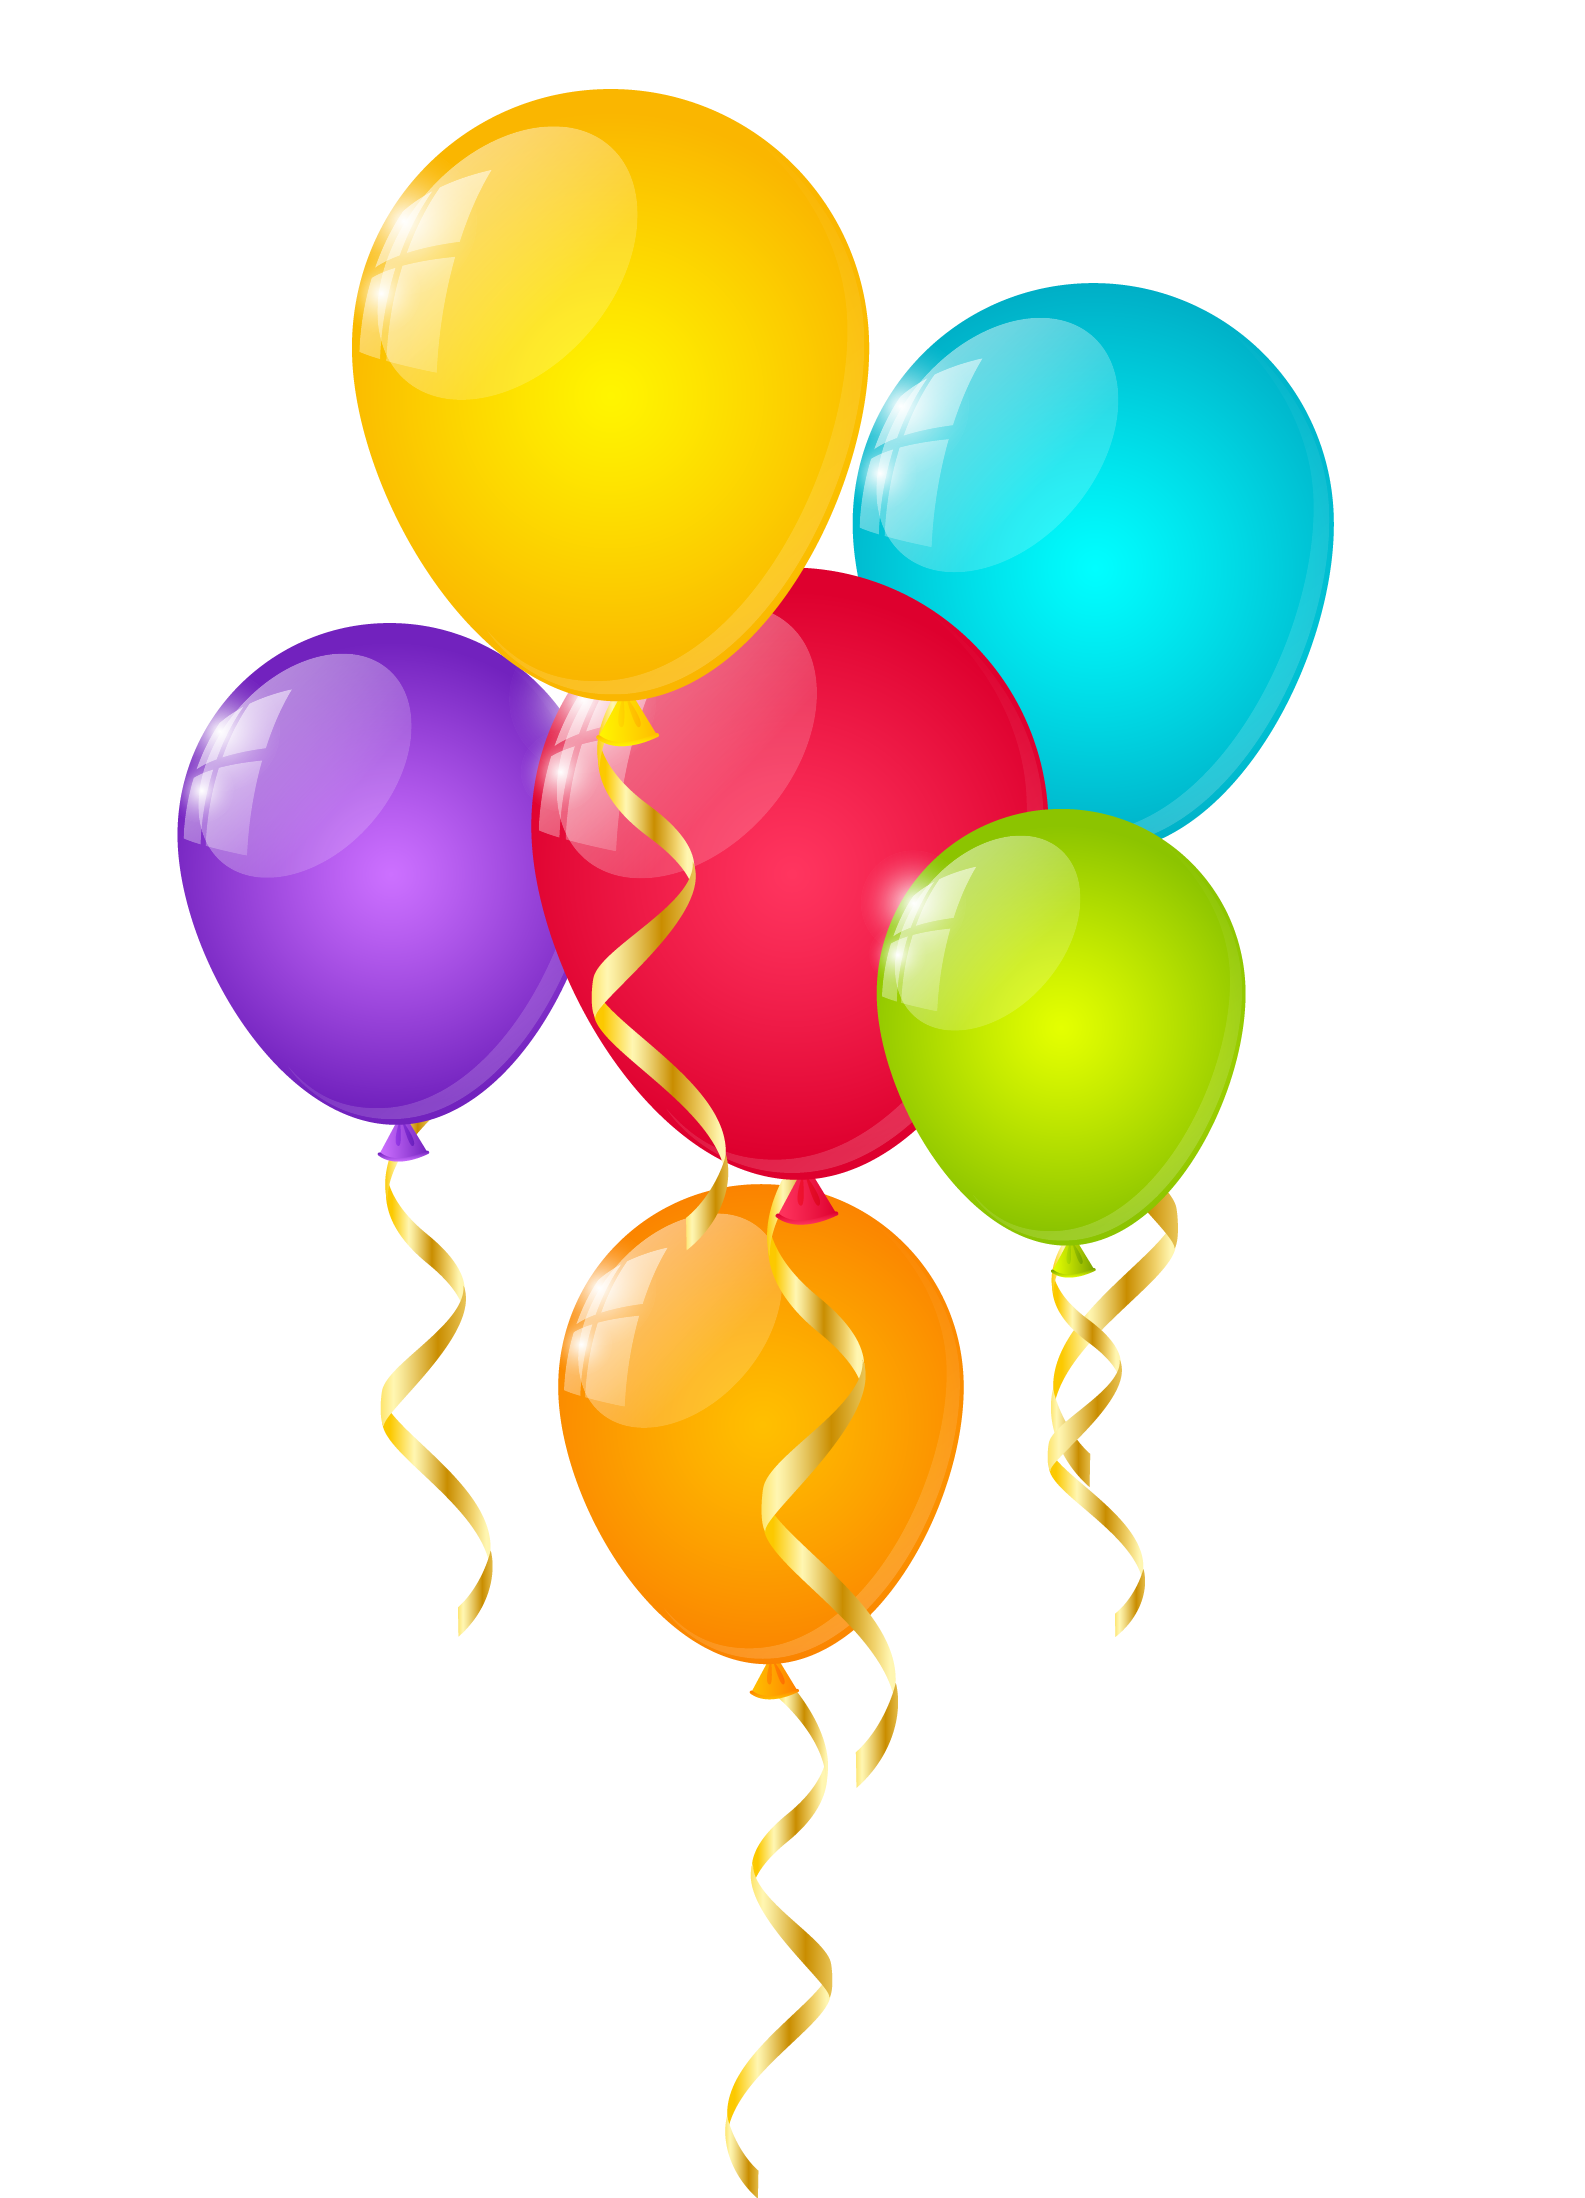 Globos png clipart images gallery for free download.